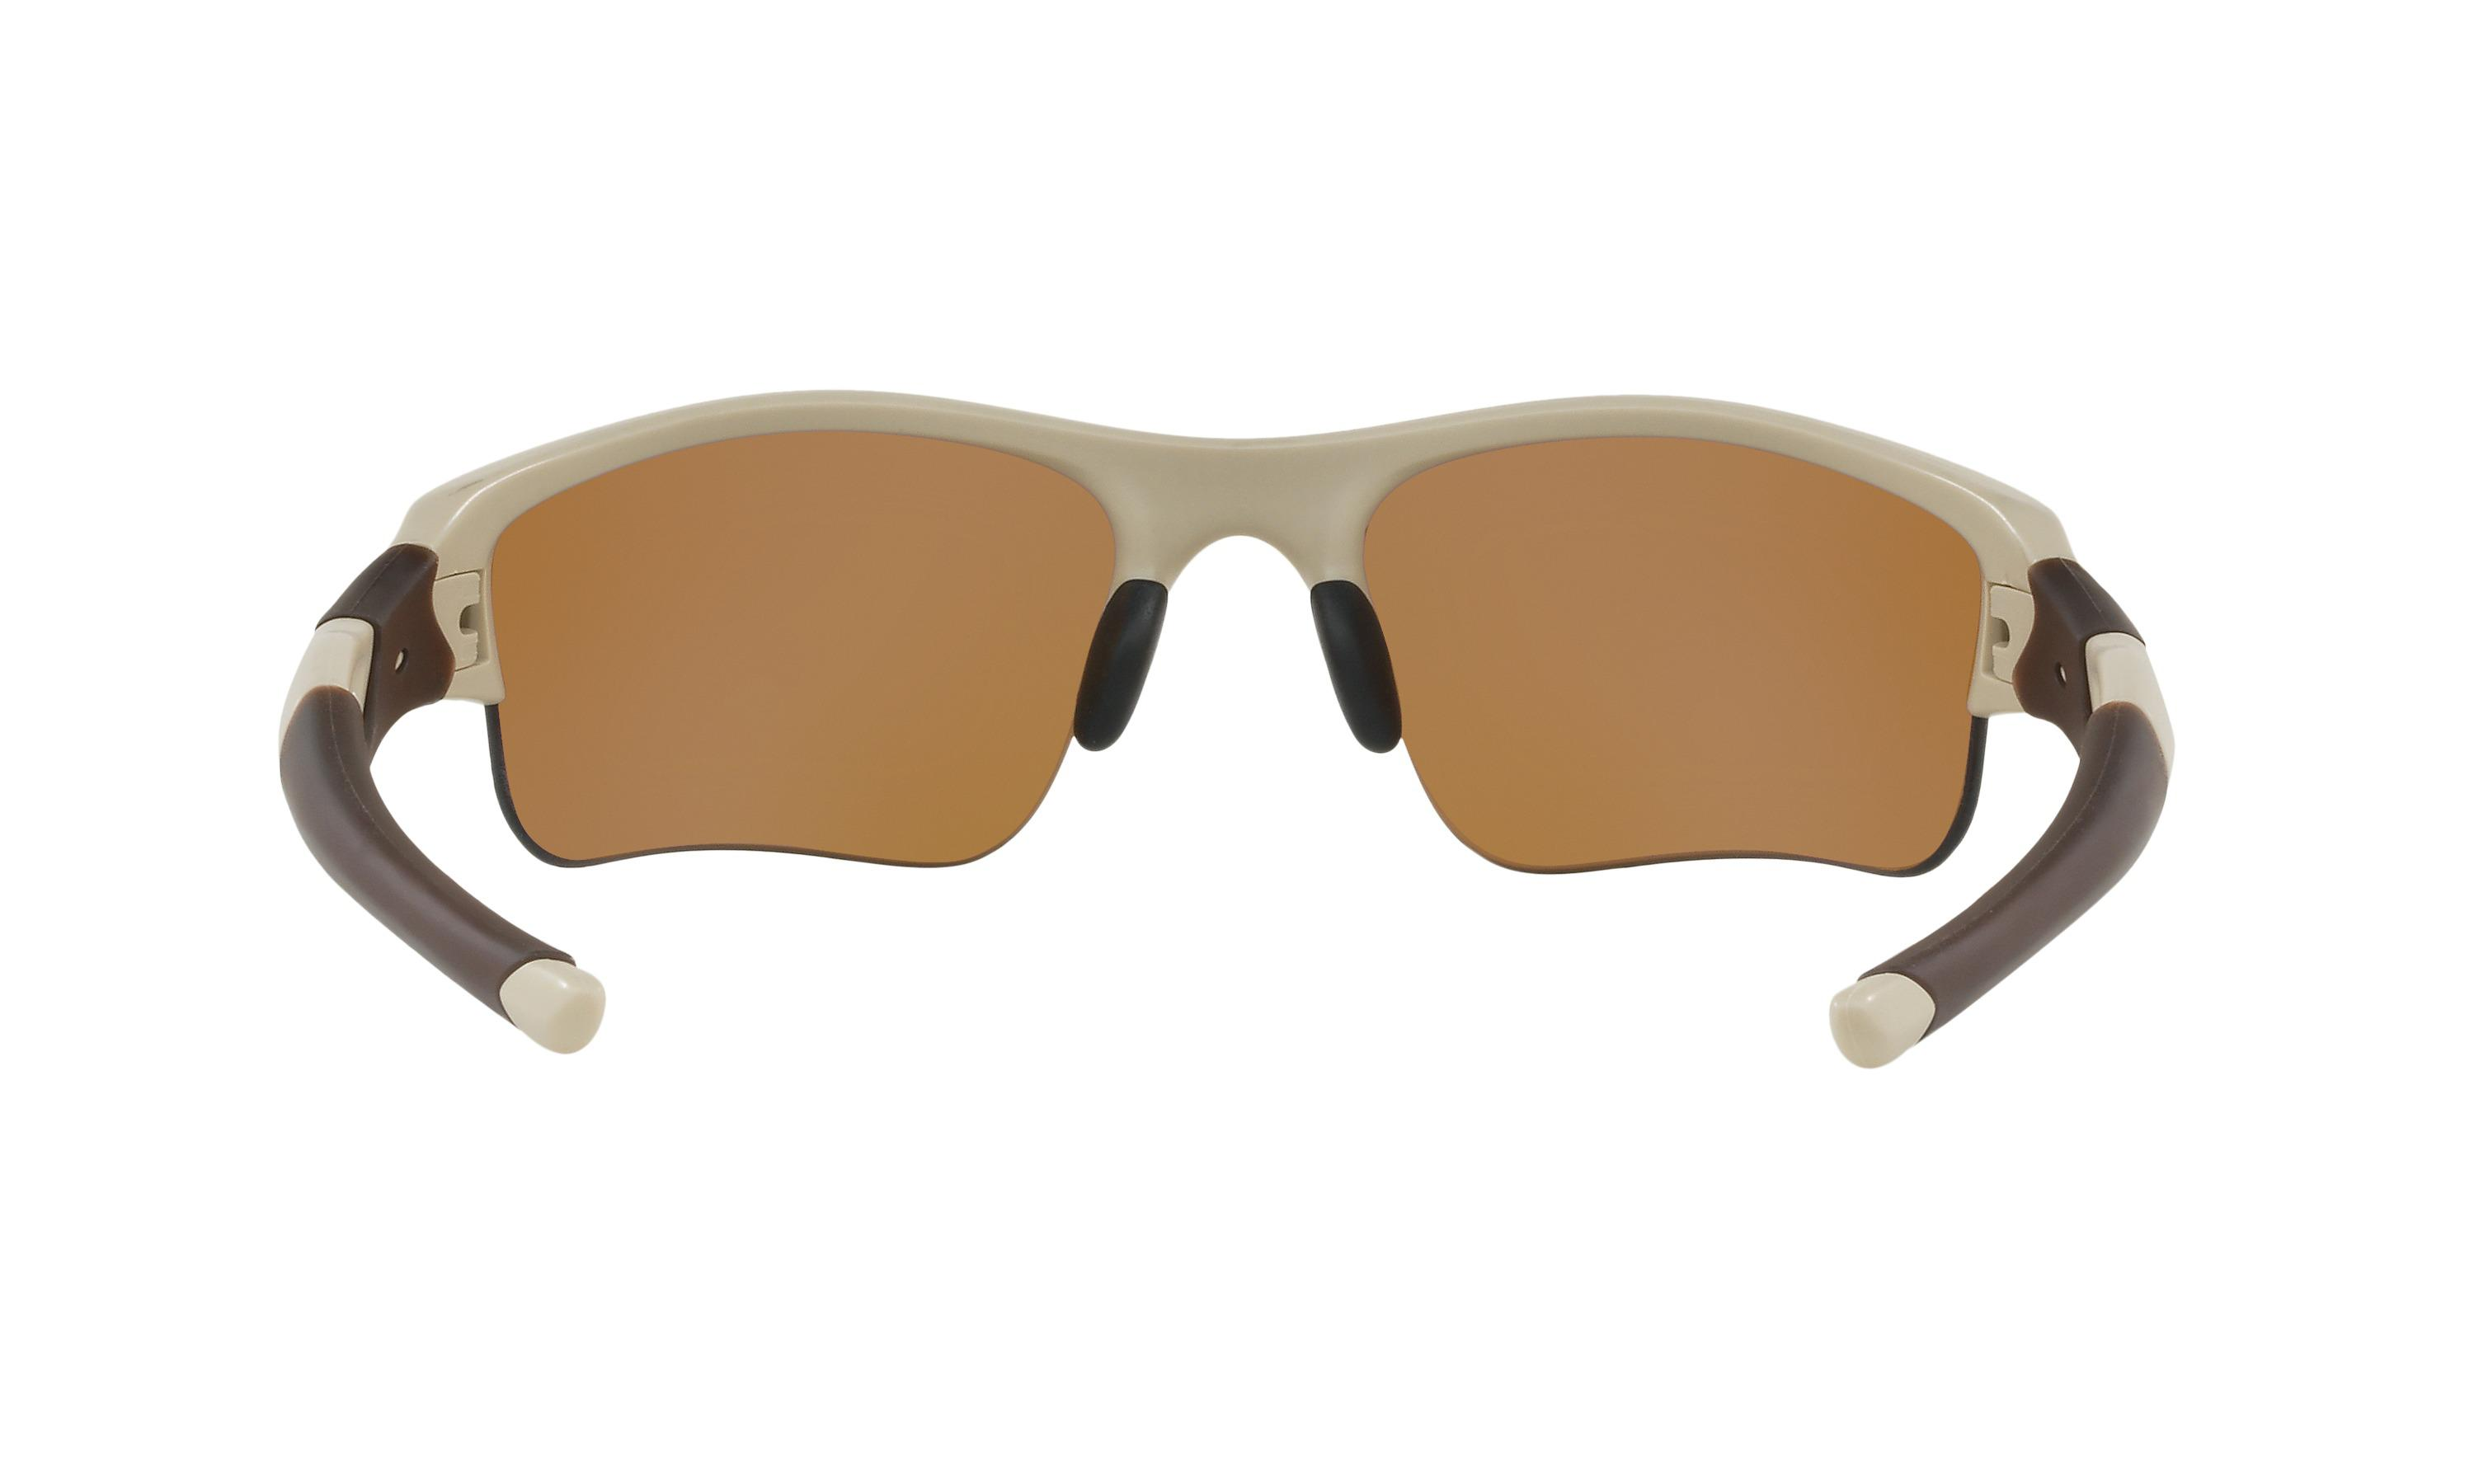 7ceface2056 Desert Tan Oakley Sunglasses « One More Soul